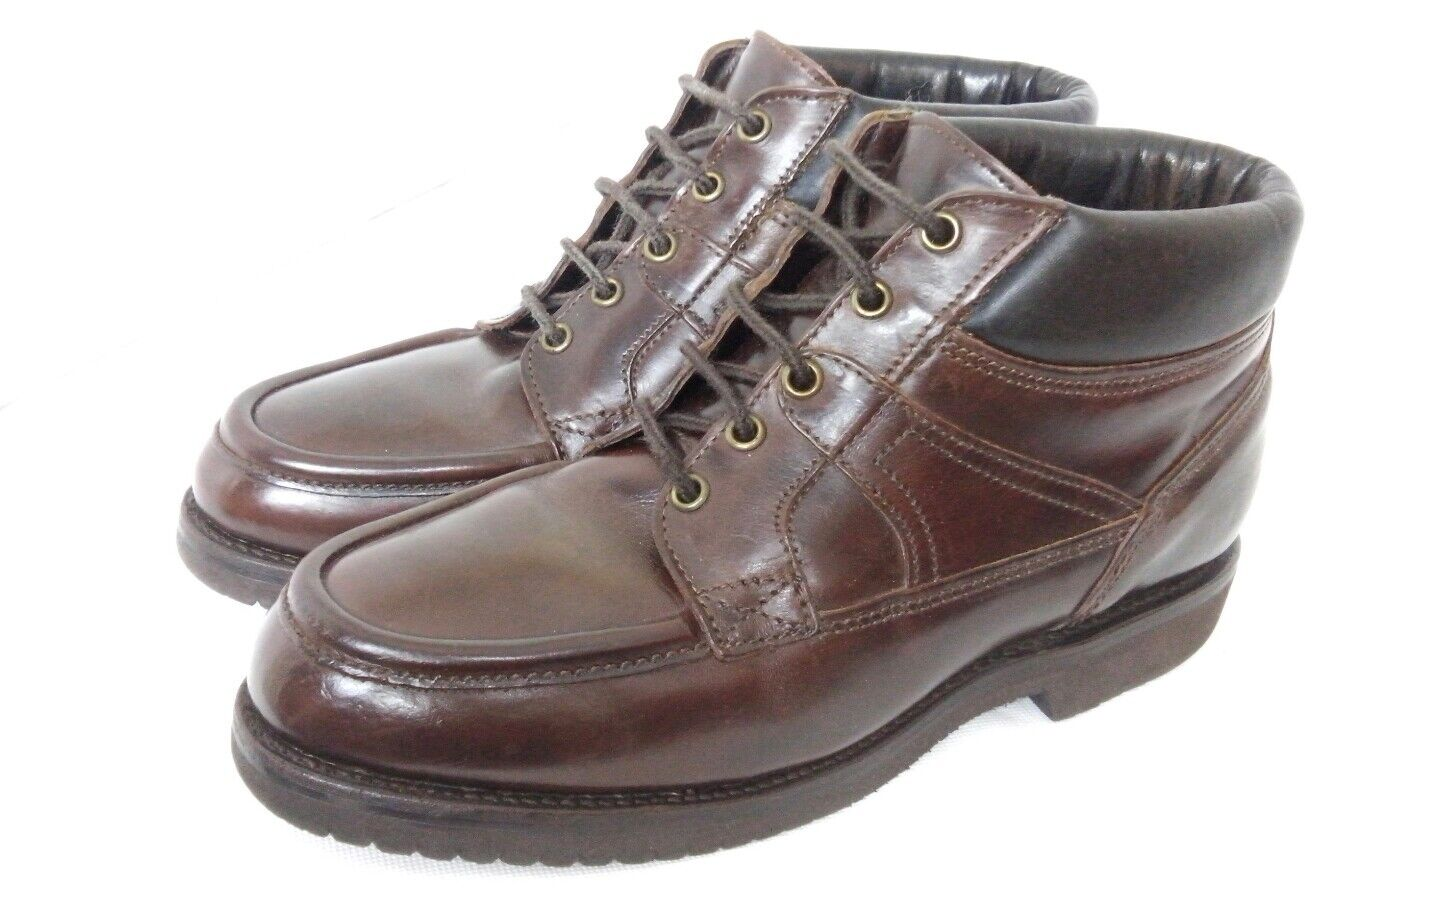 Allen Edmonds braun Leather Stiefel Vibram sole US 7 Extra Wide Fit like UK 6.5 7